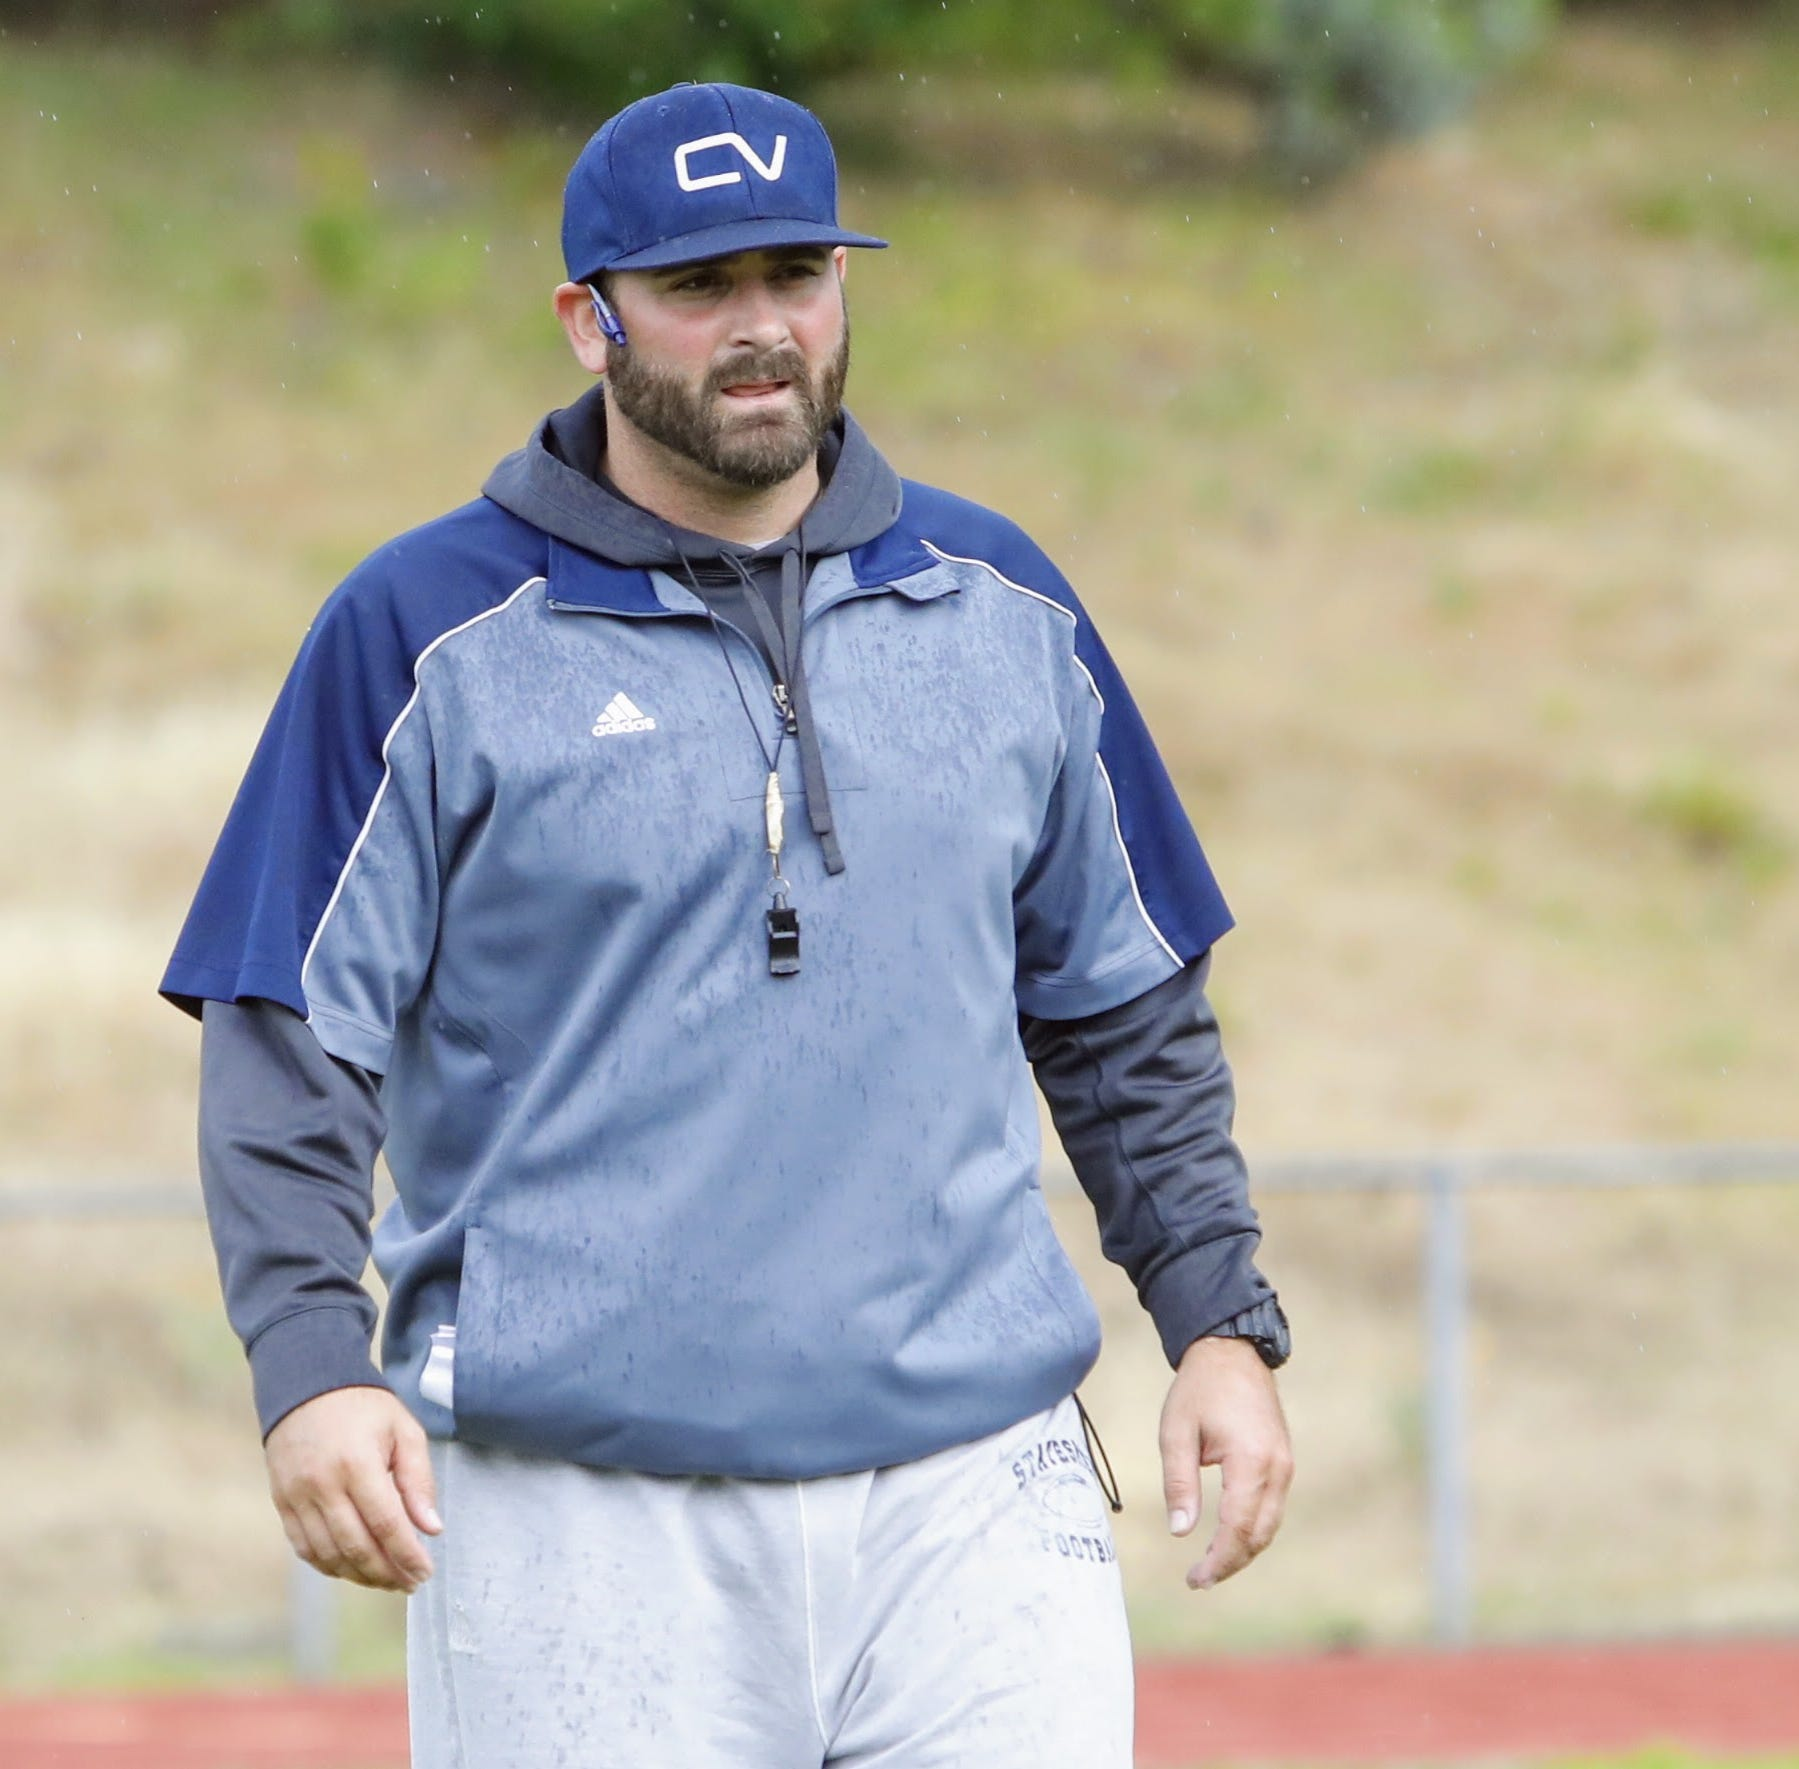 Central Valley football hopes new coach Aaron Richards is the answer to recent struggles